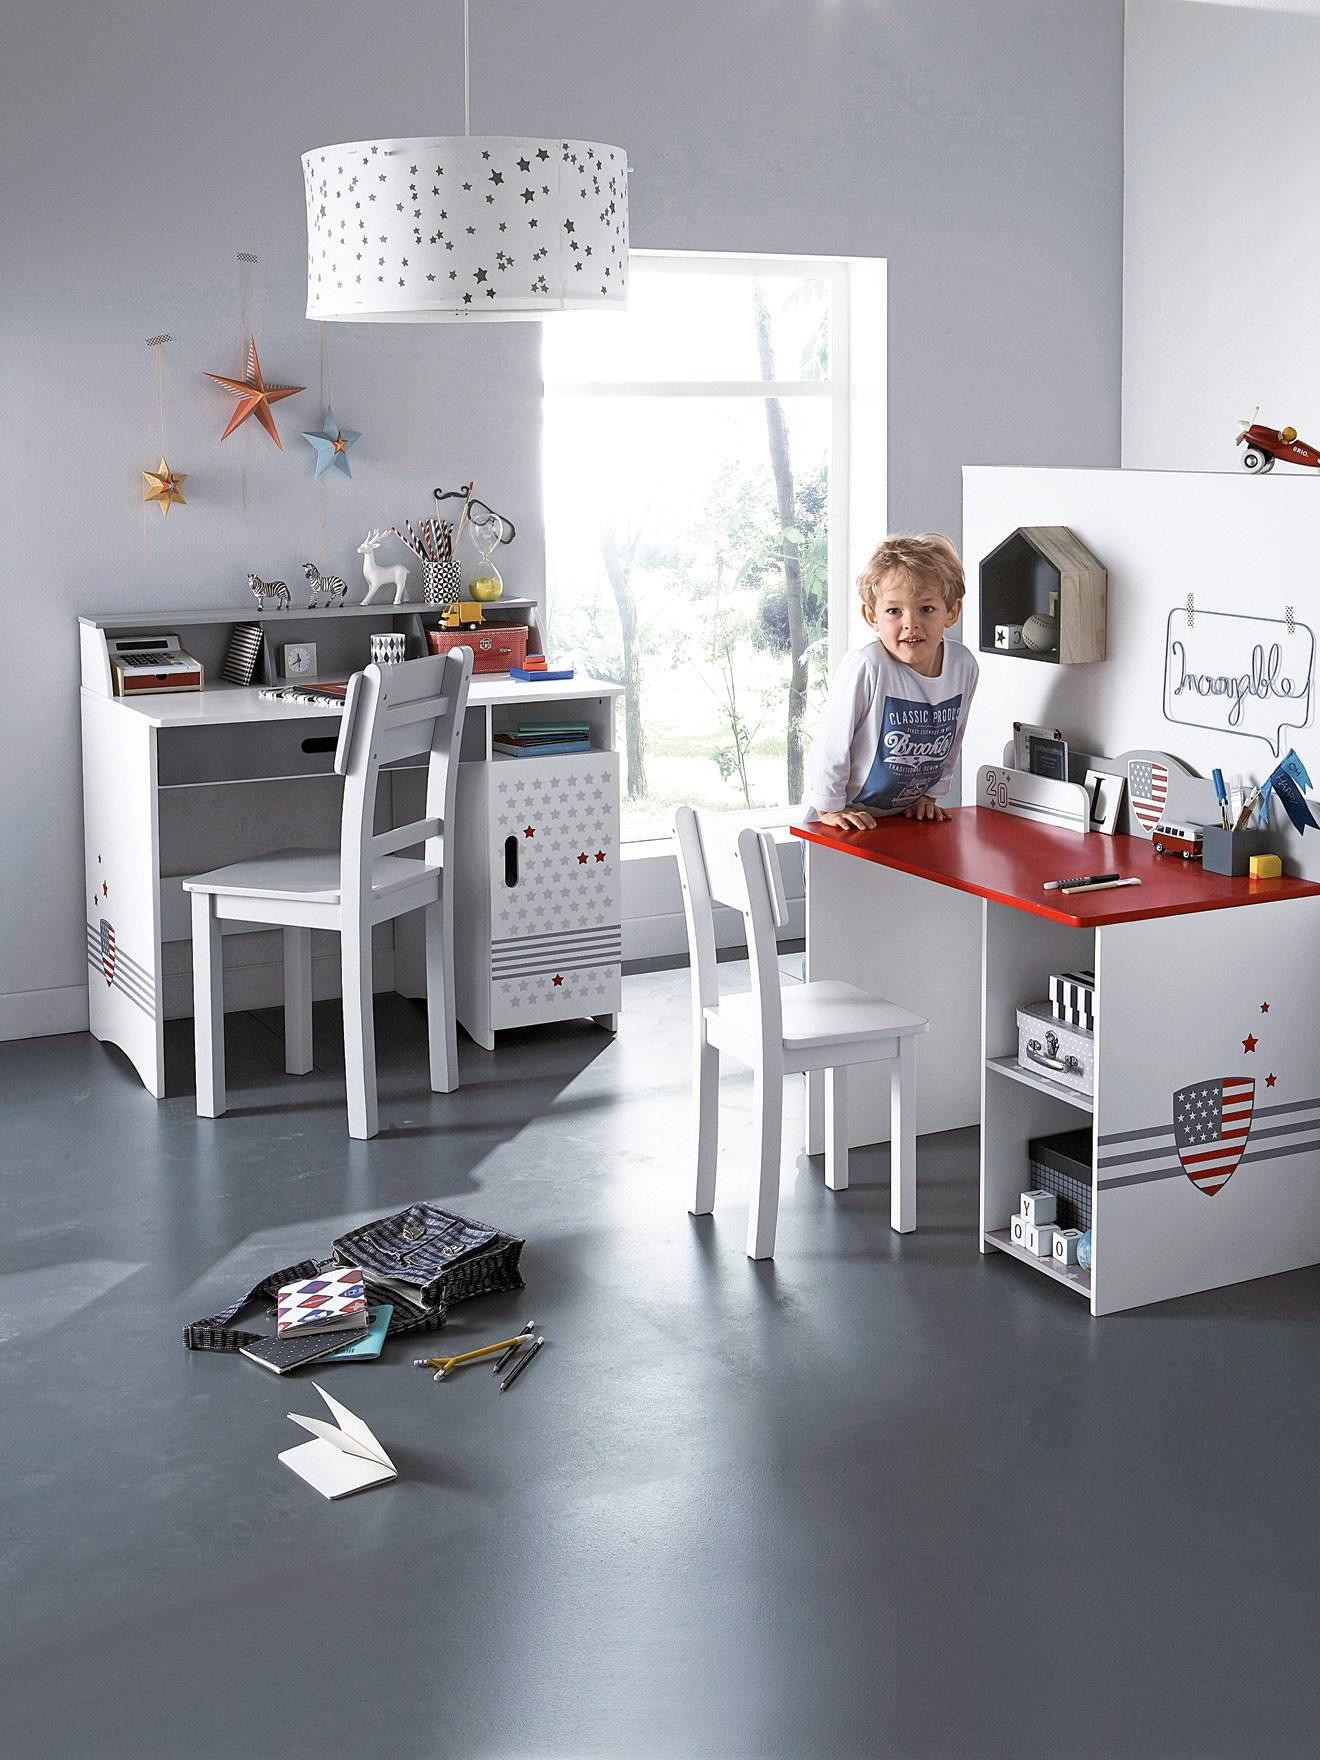 bureau fille vertbaudet top meubles et linge de enfant lit bblit combin with bureau fille. Black Bedroom Furniture Sets. Home Design Ideas